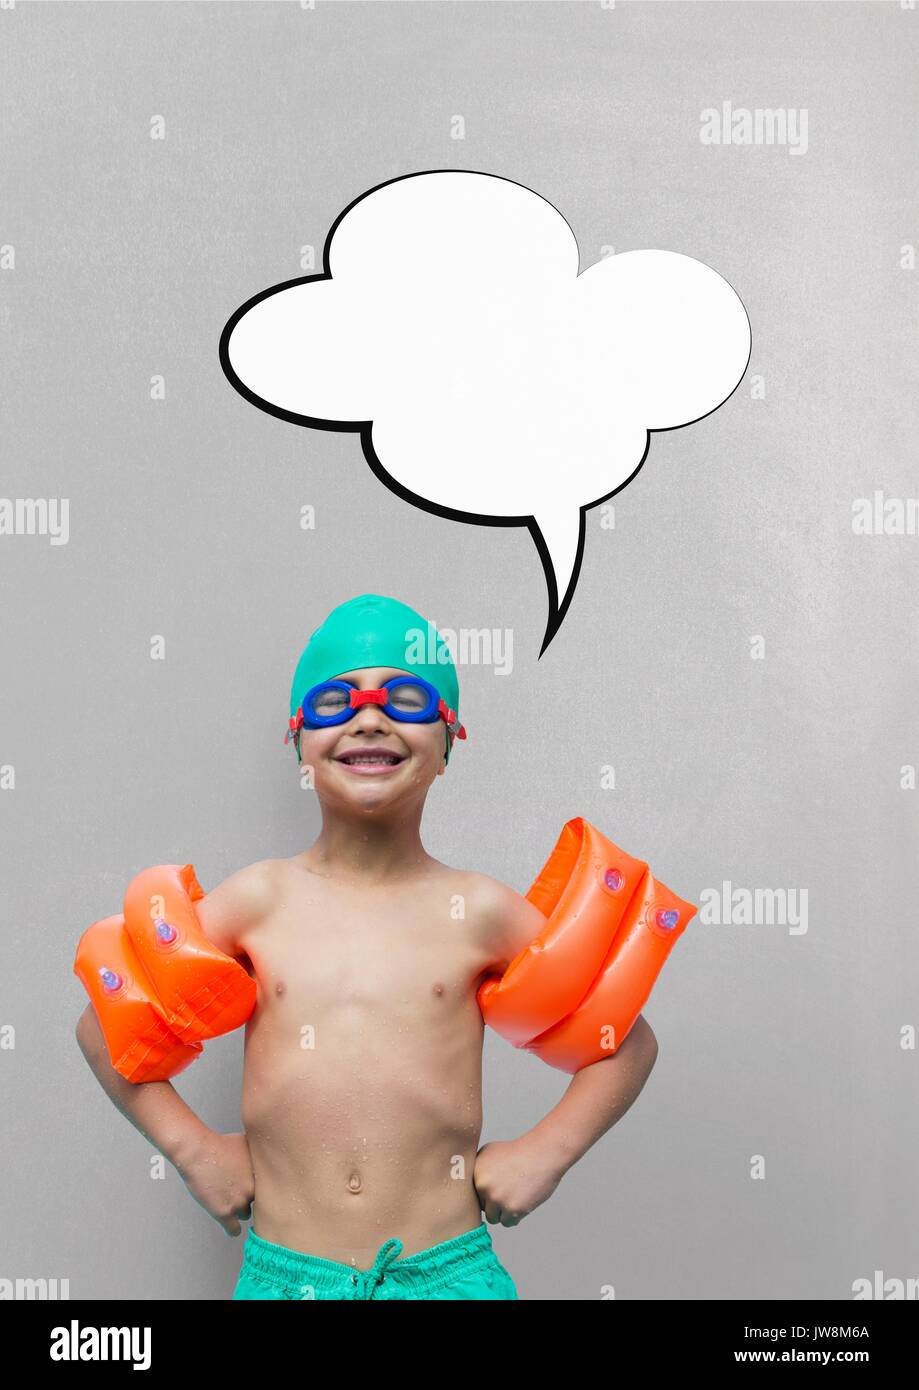 a7e5cdbf8b4 Digital composite of Boy with speech bubble ready to swim against grey  background - Stock Image